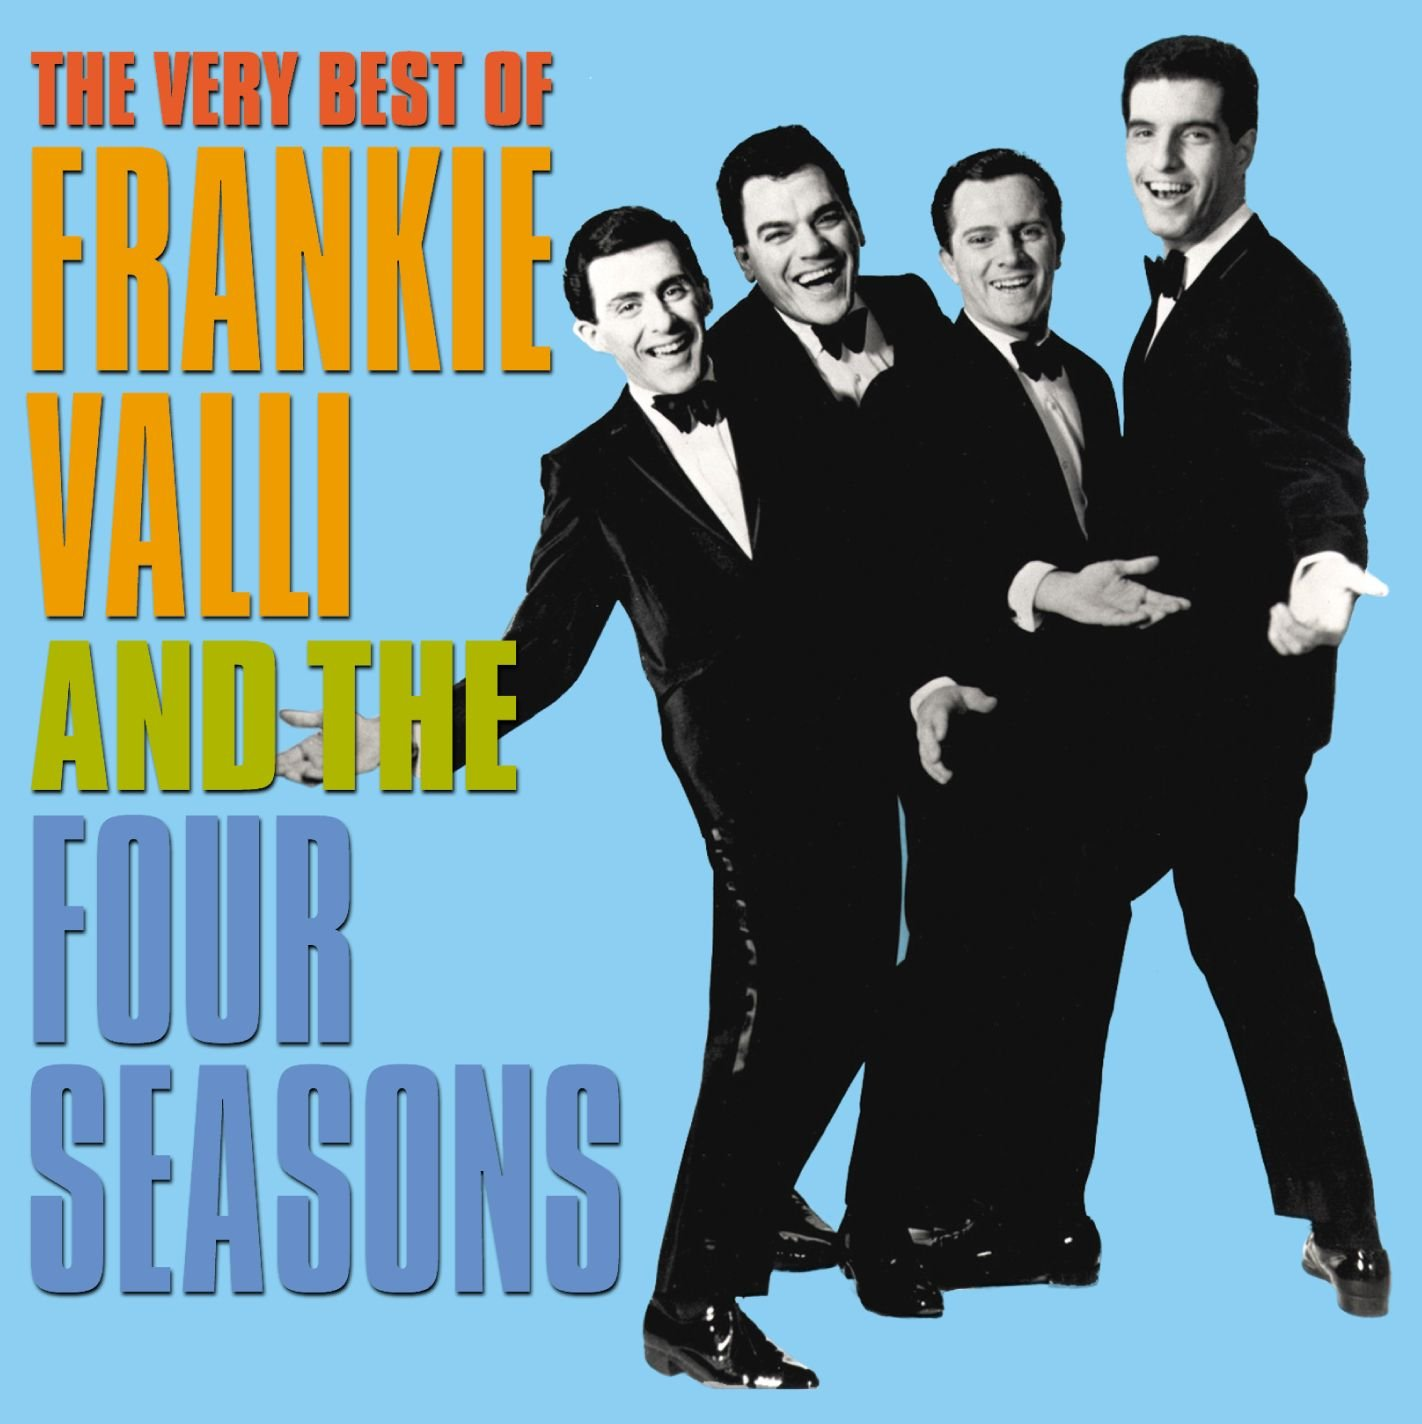 Frankie Valli, The Four Seasons - Very Best of Frankie Valli and ...